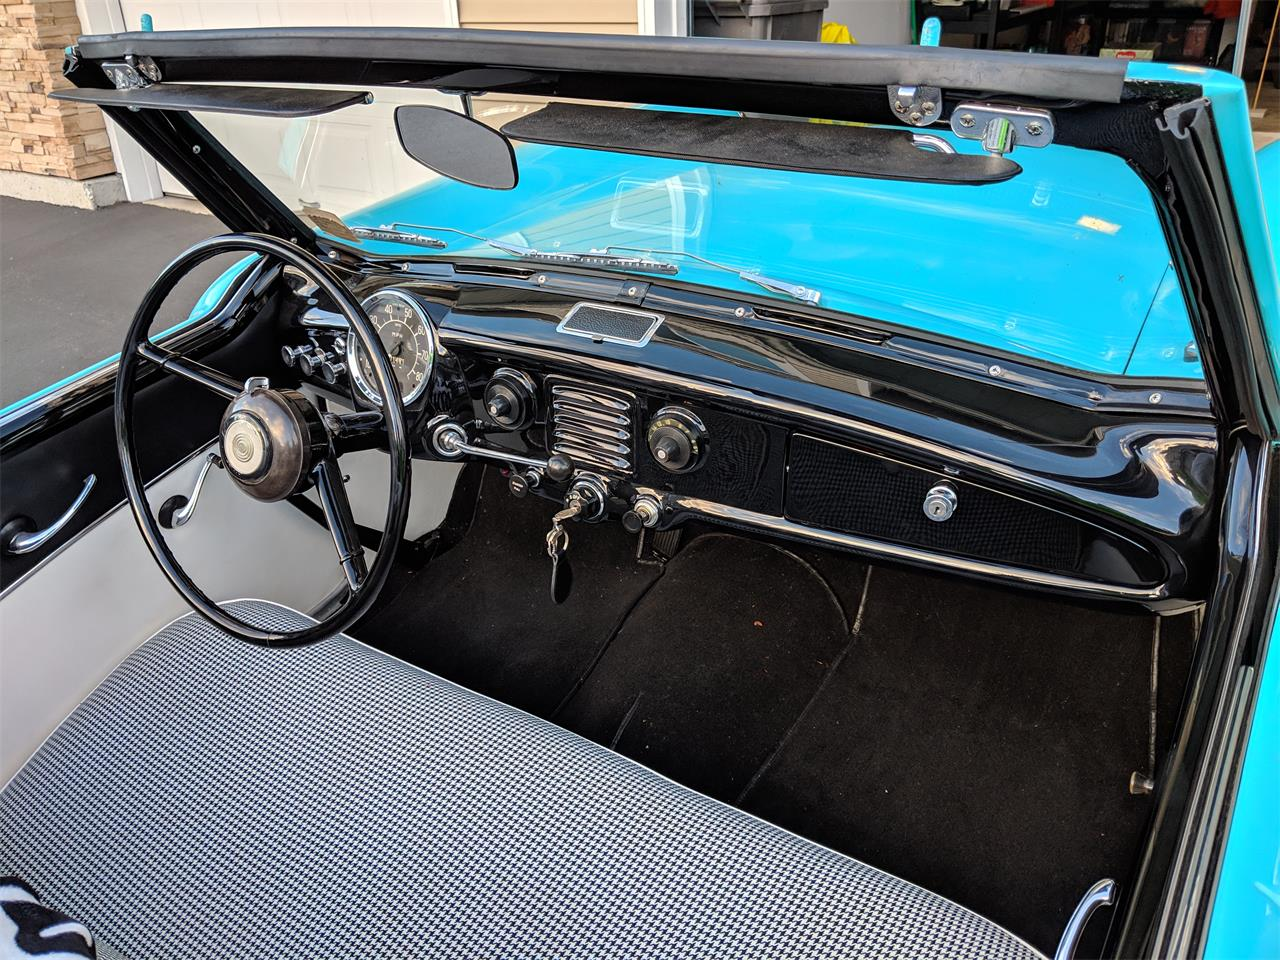 Large Picture of 1959 Nash Metropolitan located in Snohomish Washington - $18,500.00 Offered by a Private Seller - OXMD